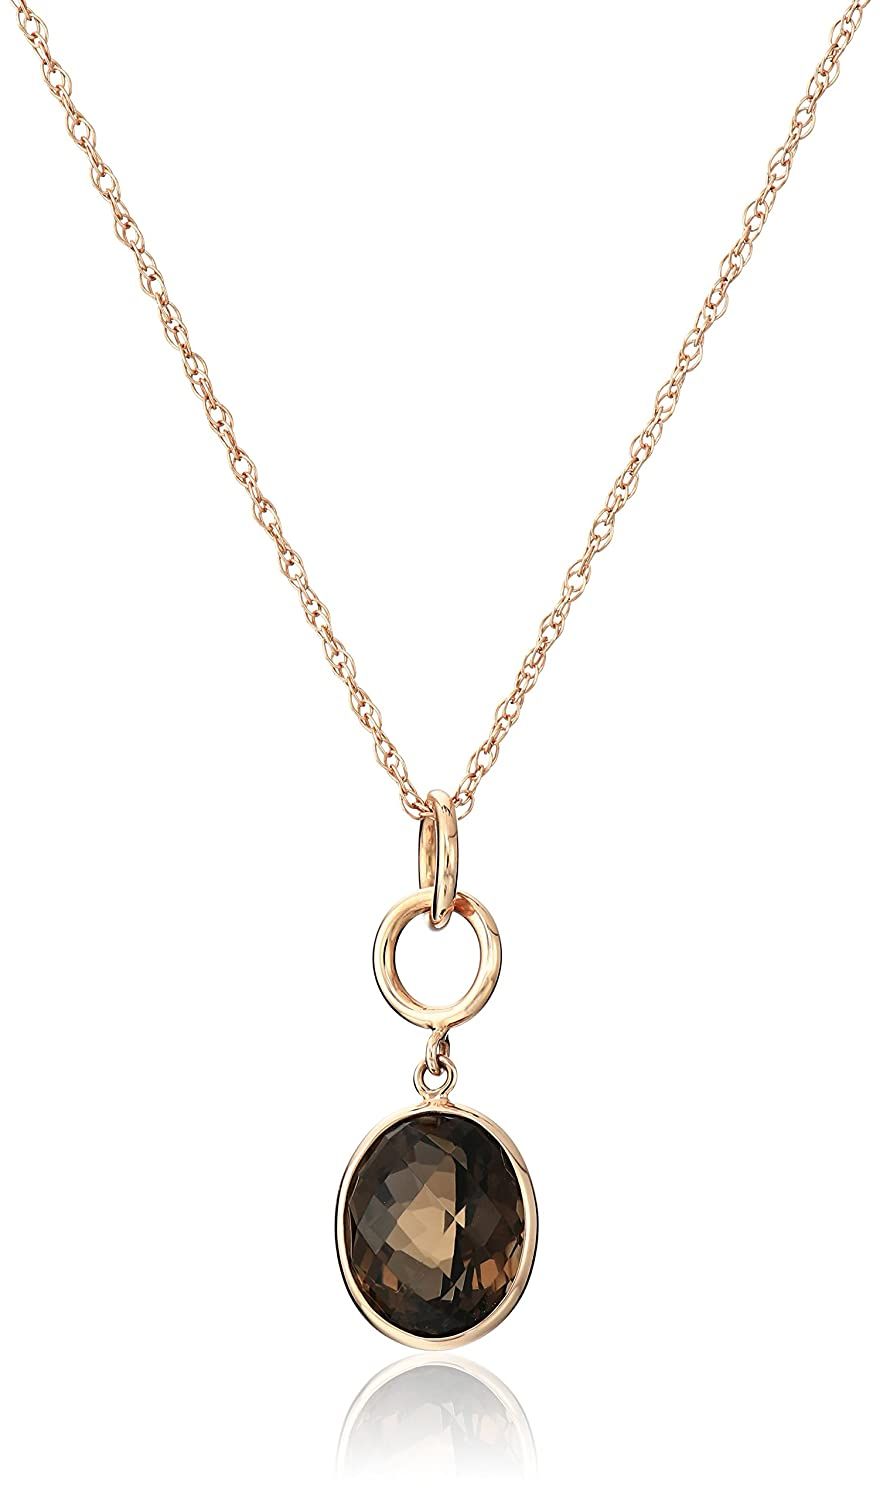 10k Rose Gold Contemporary Bezel Set Design Double Interlock Circle Oval Smoky-Quartz Pendant Necklace, 18""